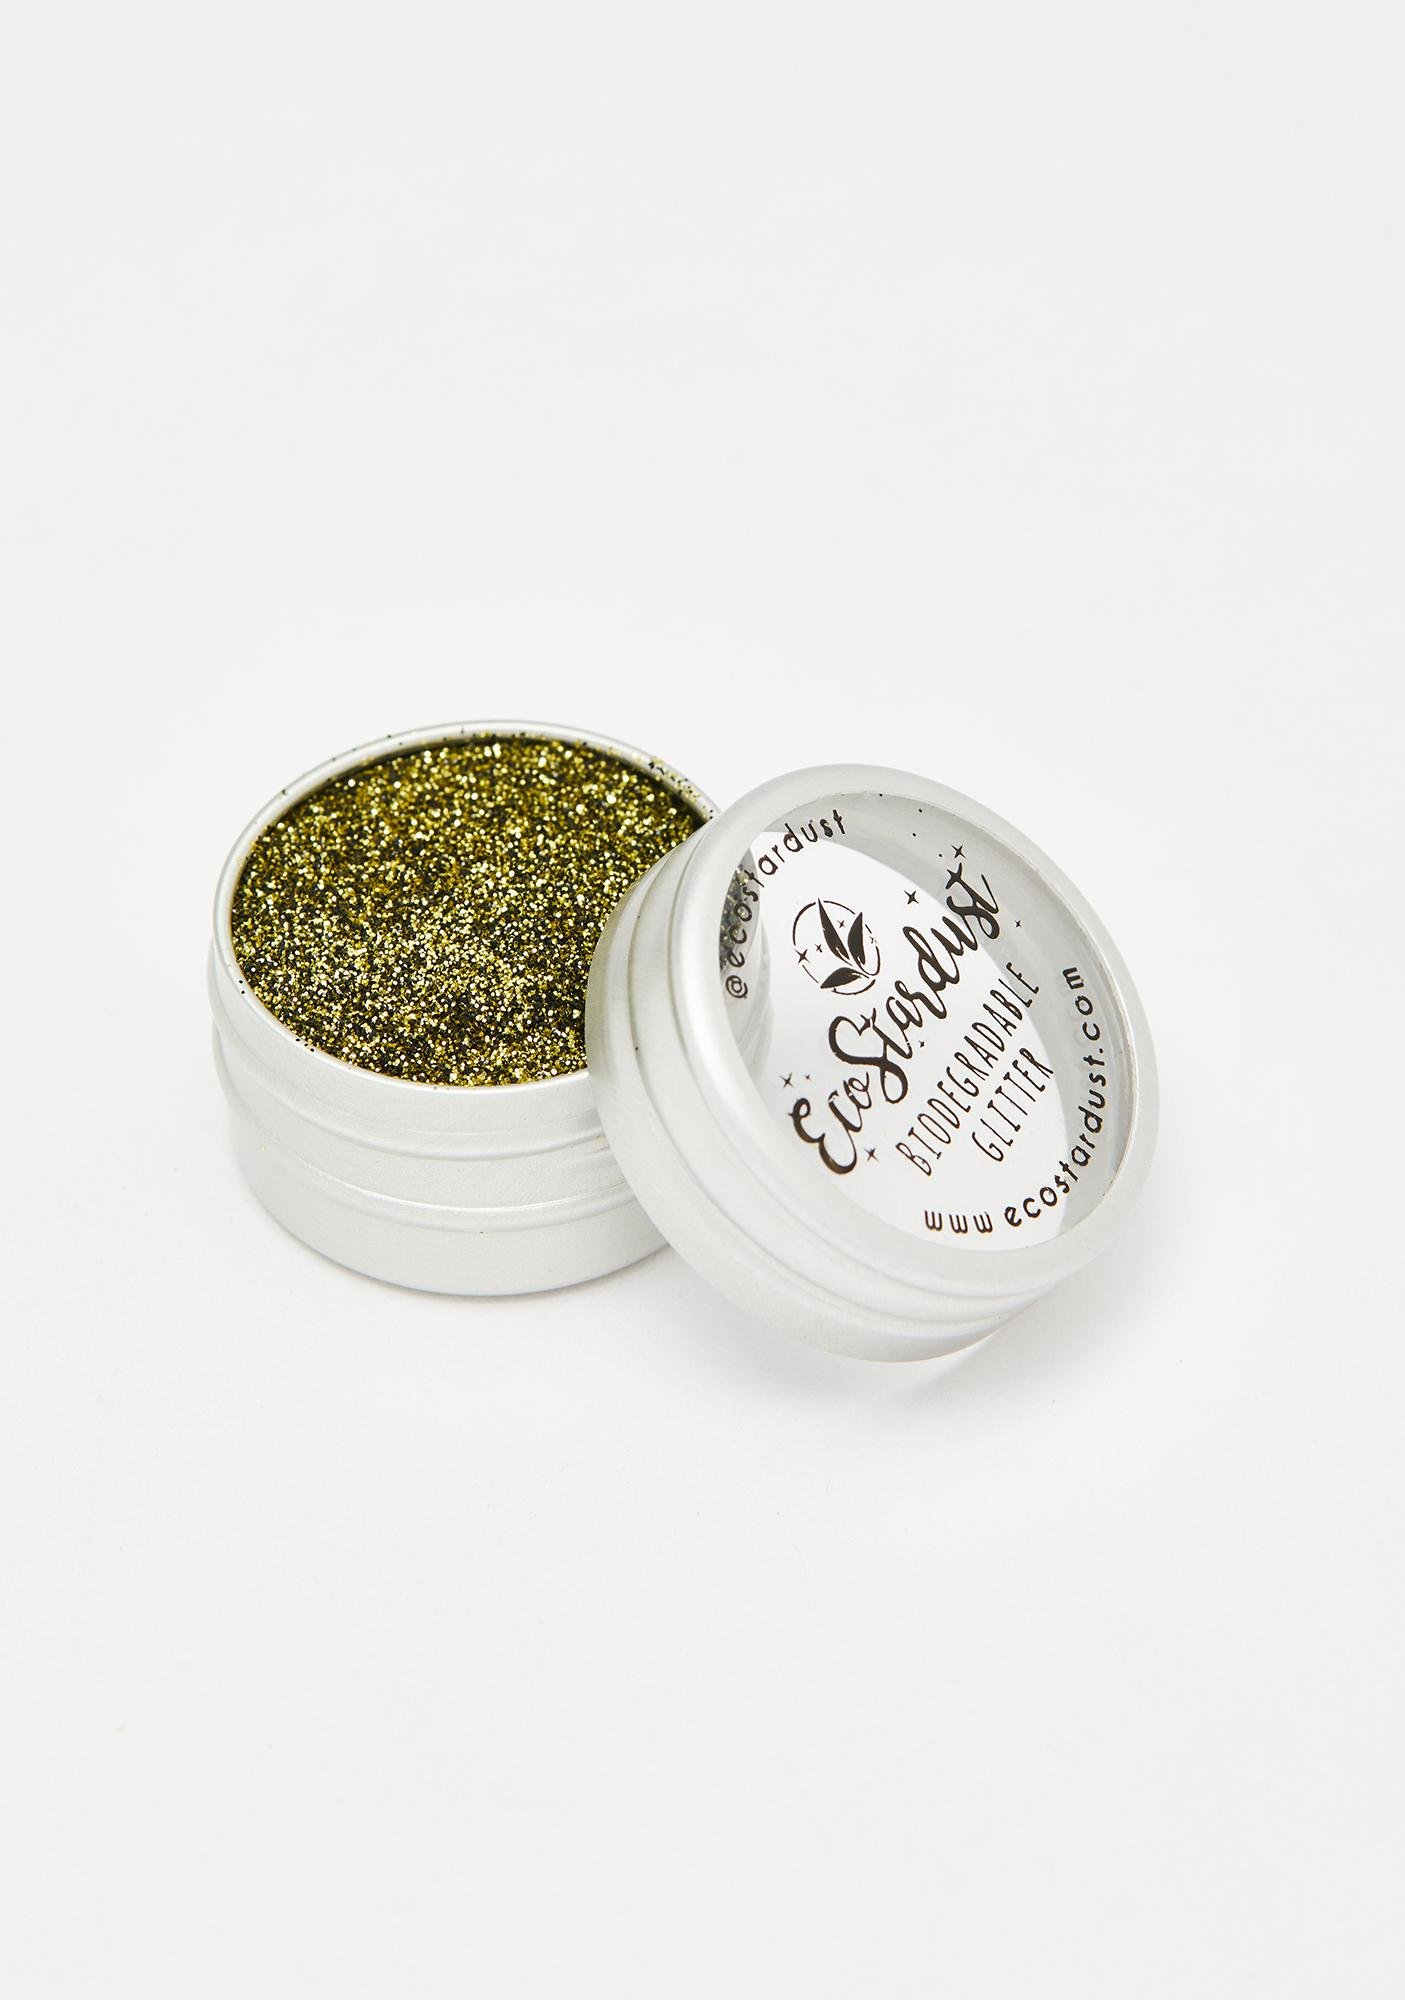 EcoStardust Deco Biodegradable Glitter